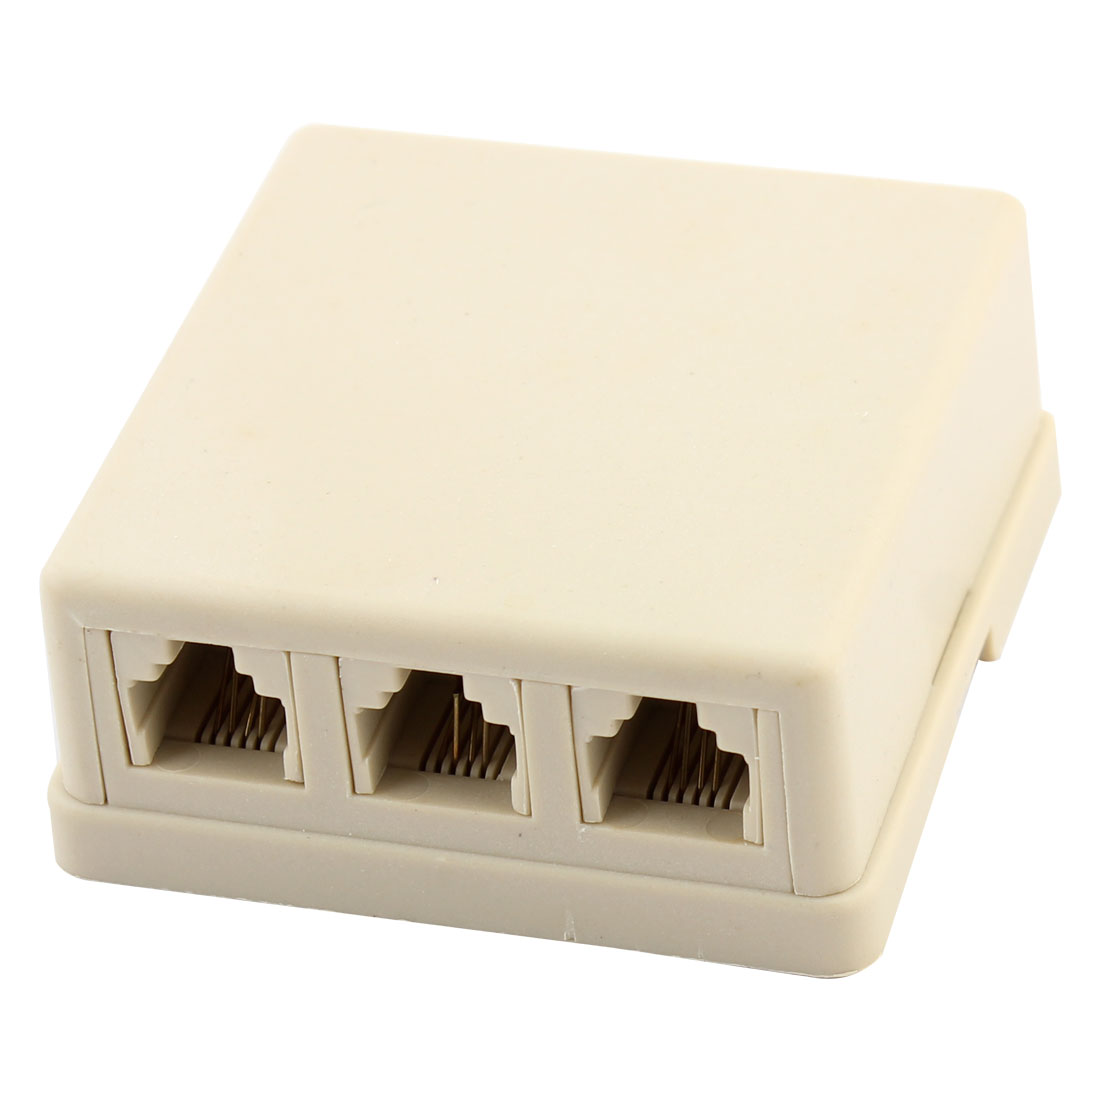 6P4C 1 to 3 RJ11 Female Socket Telephone Coupler Connector Beige